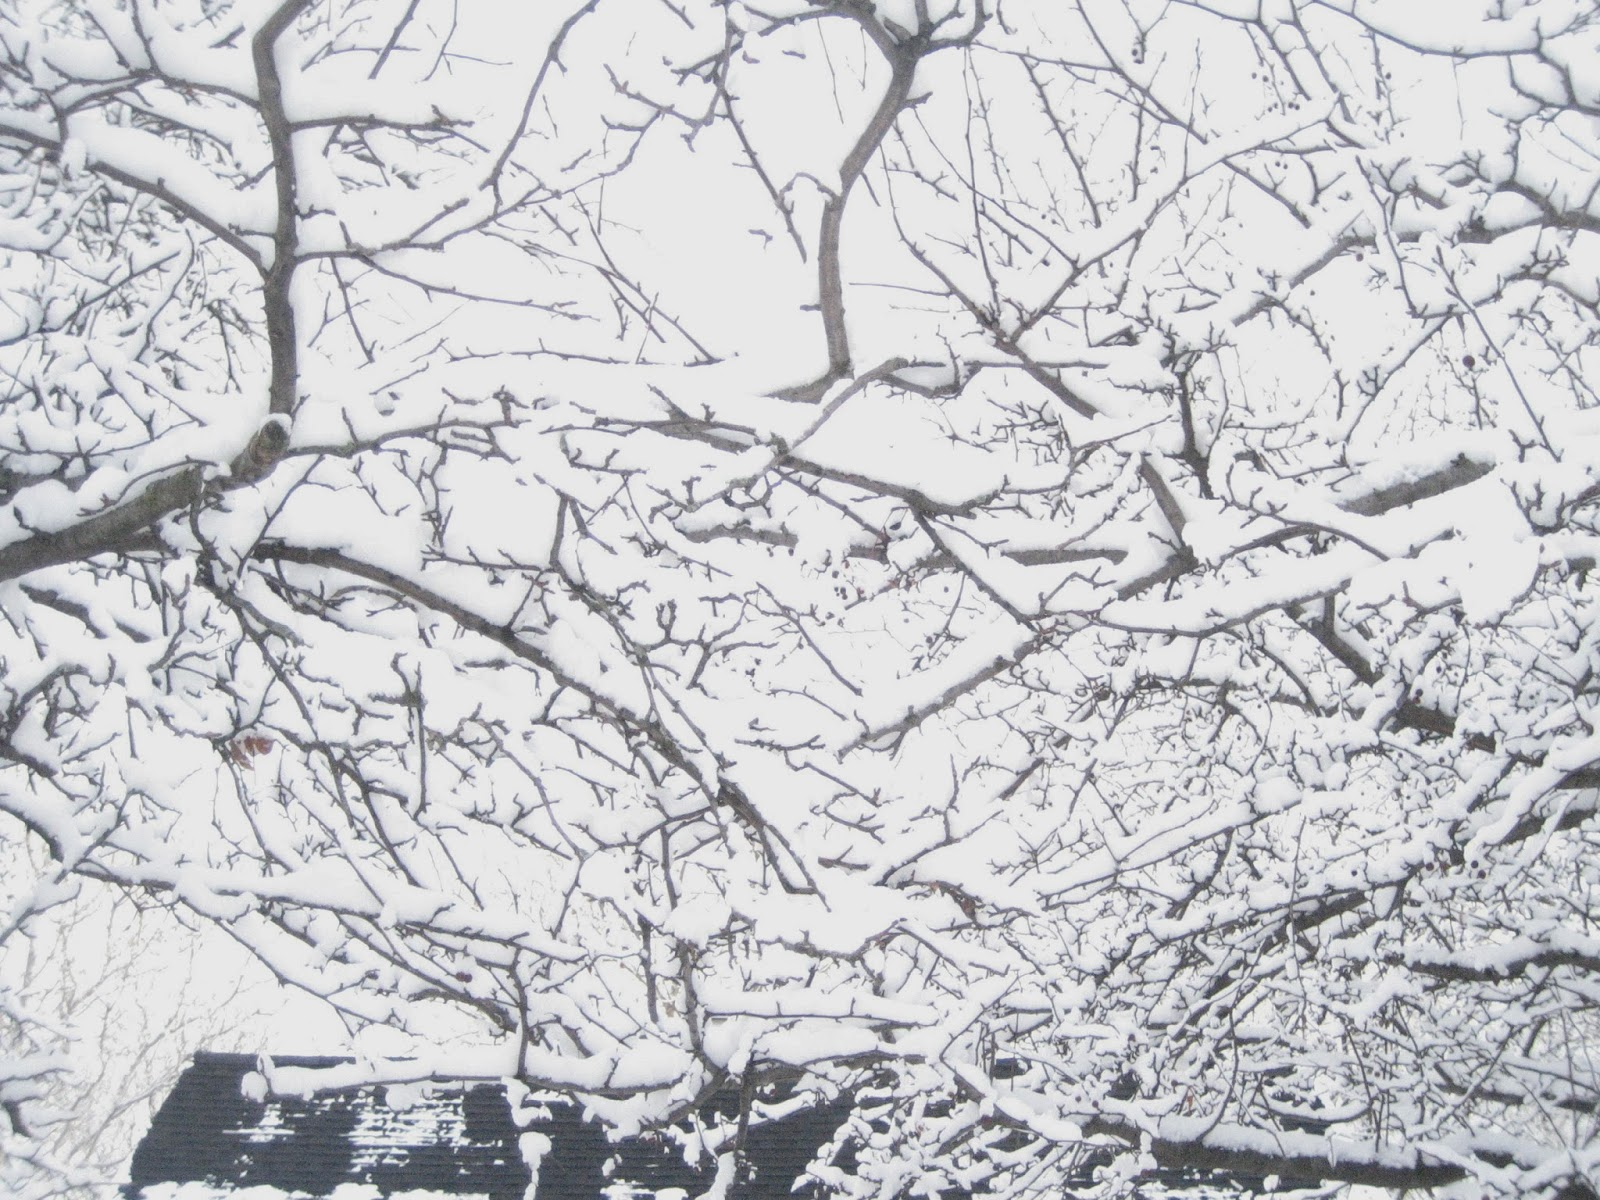 in winter the branches look like lines sketches